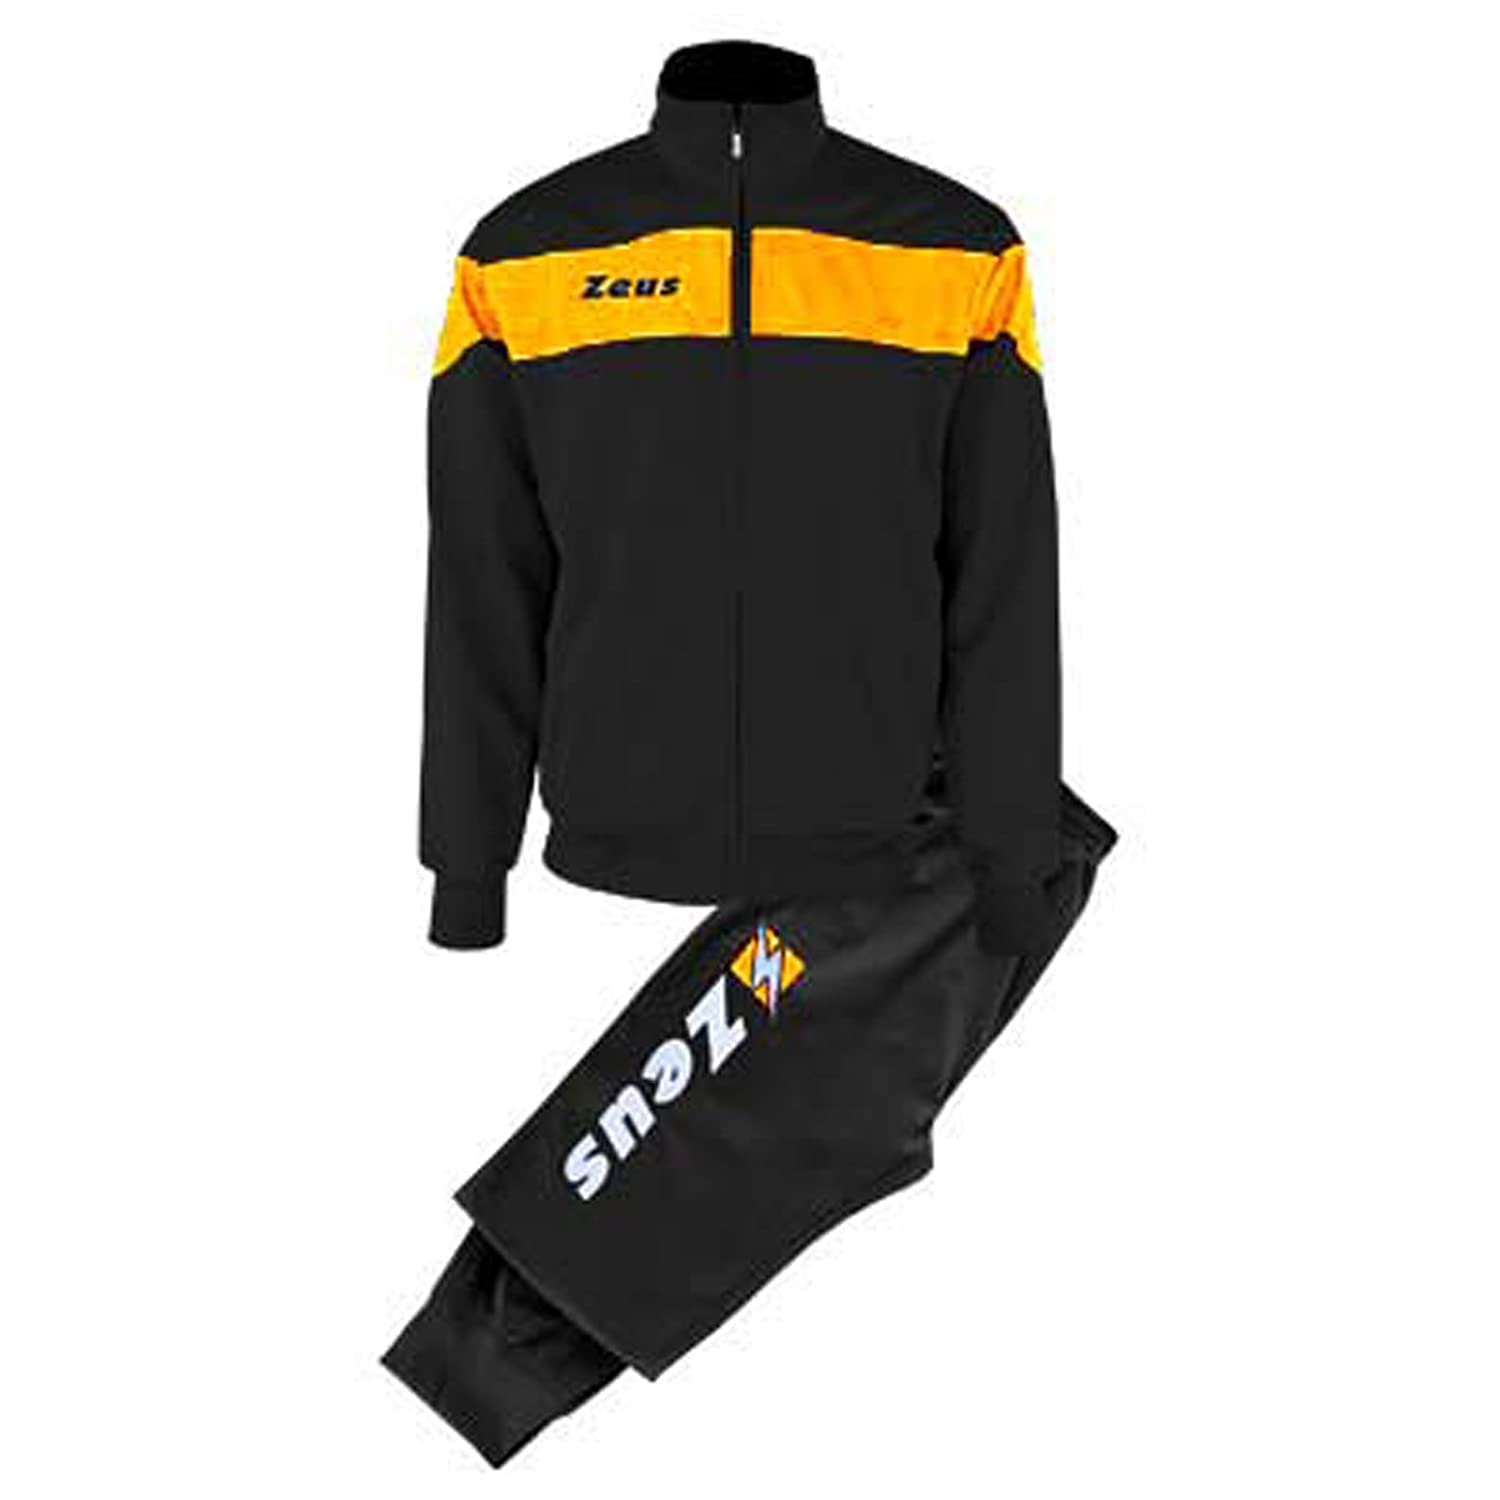 02cd118ec1 Zeus APOLLO Men's Tracksuit for Sports Staff Running Jogging Training Relax  Football Tournament School Sport: Amazon.co.uk: Sports & Outdoors